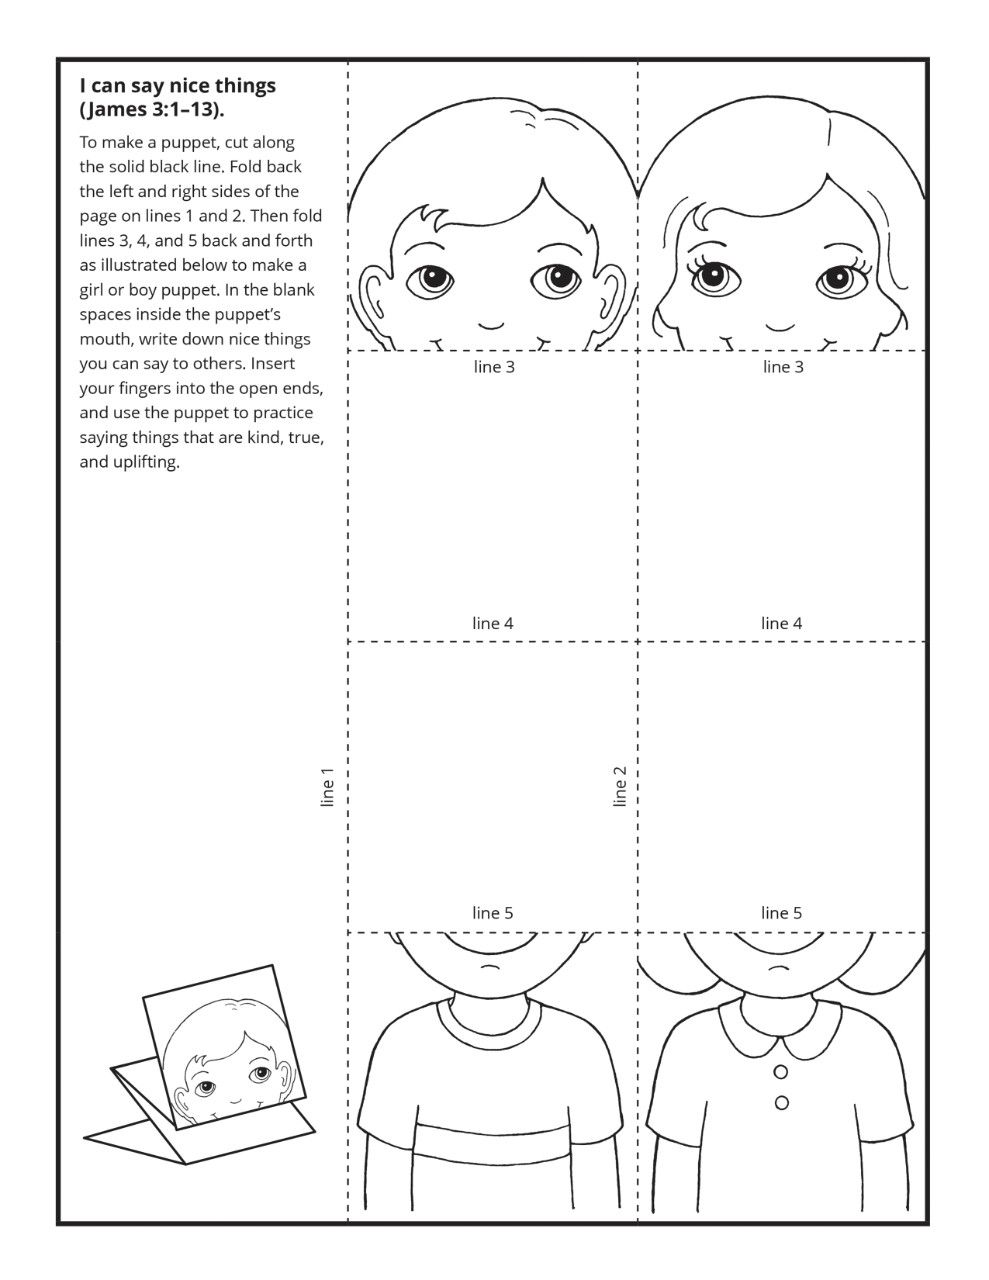 A puppet activity to teach about speaking kindly.